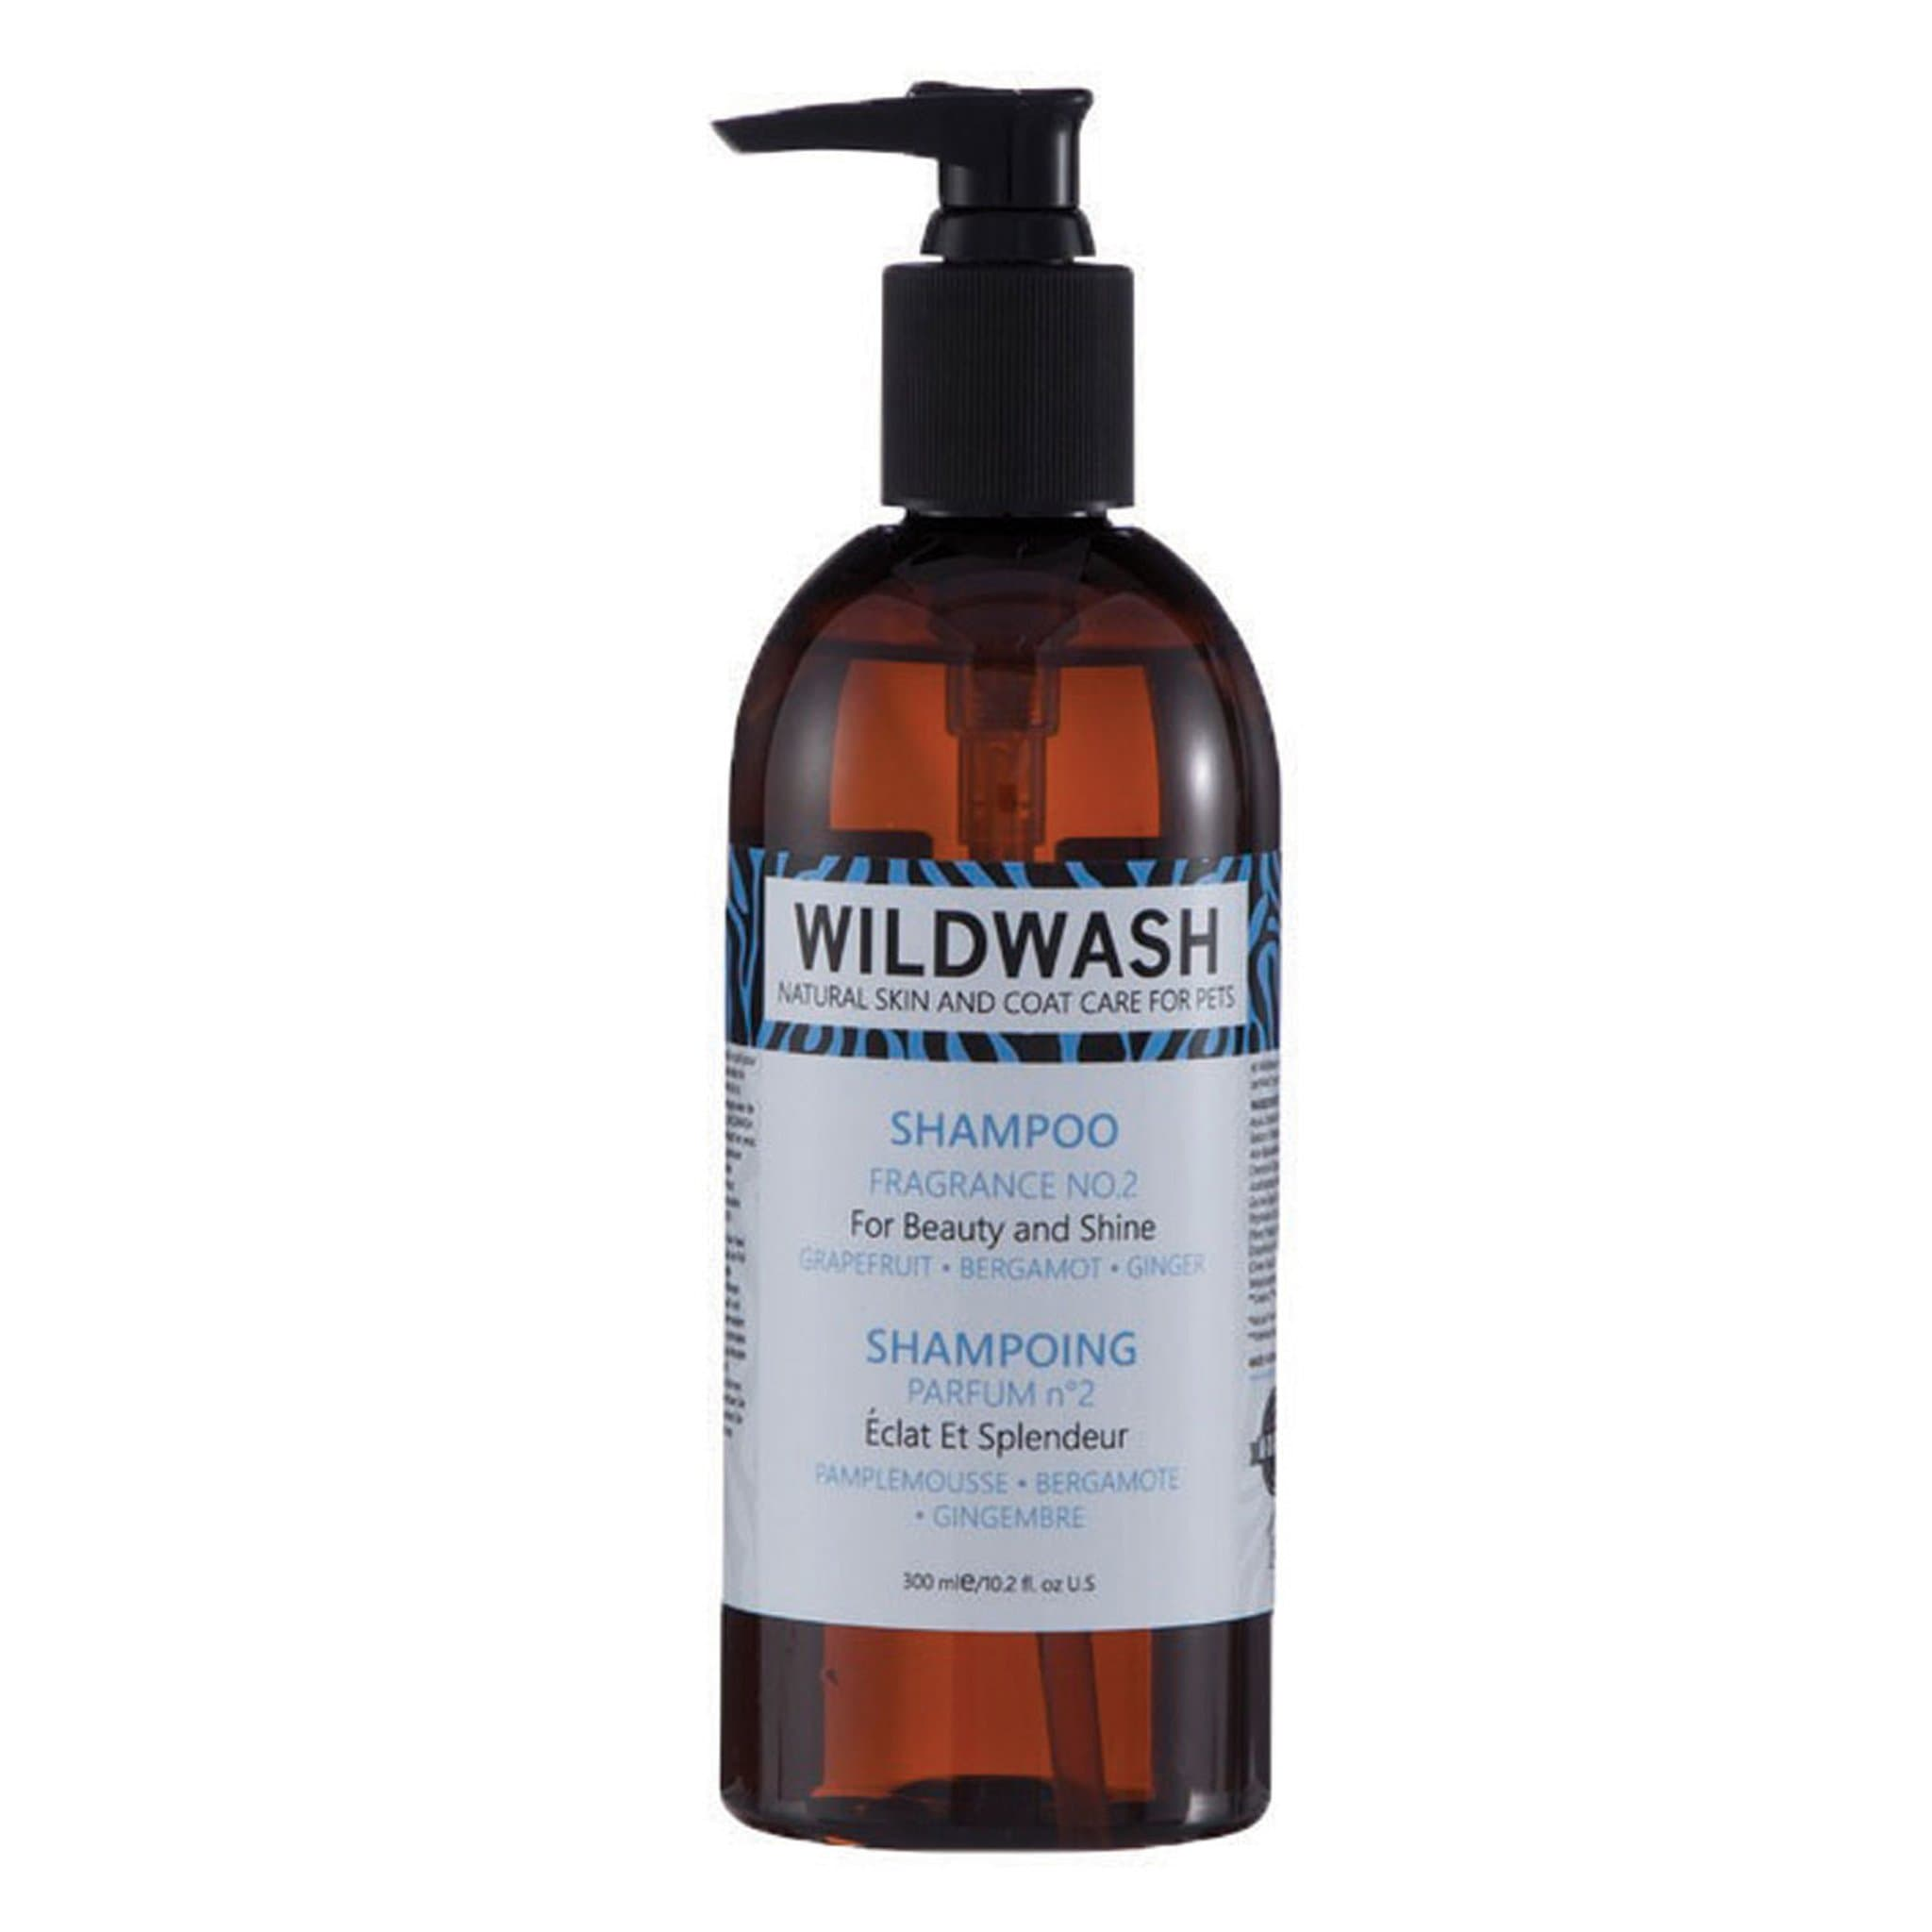 Pet Revolution WildWash Dog Shampoo For Beauty And Shine Fragrance No.2 11546 300ml